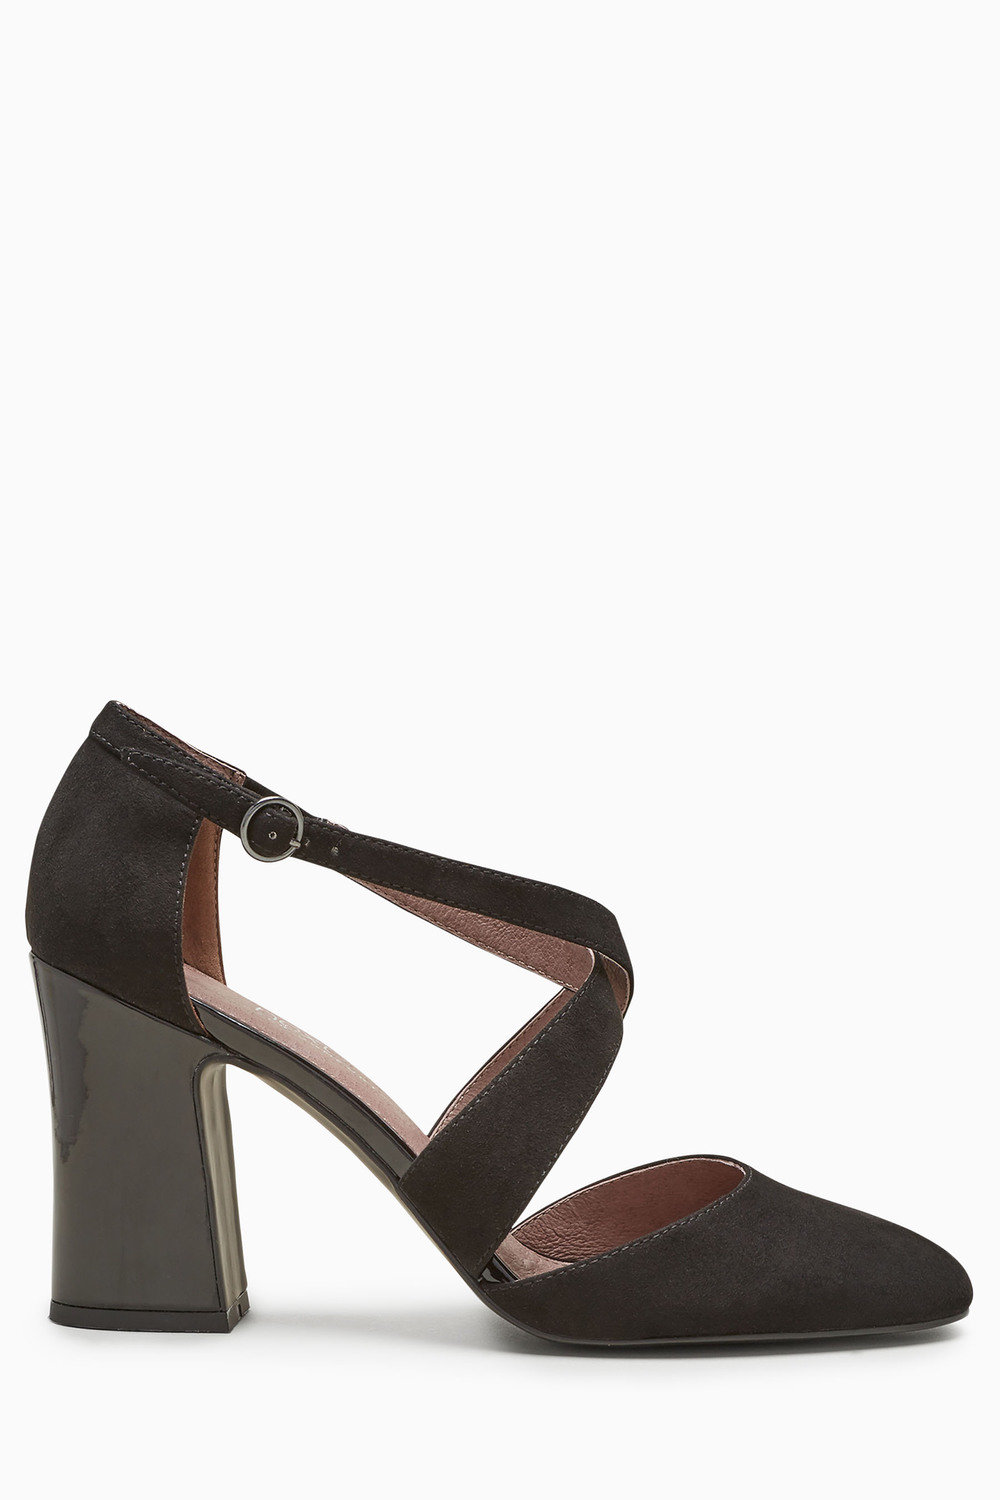 f4a94d6322a Next Two Part Cross Block Heel Shoes Online